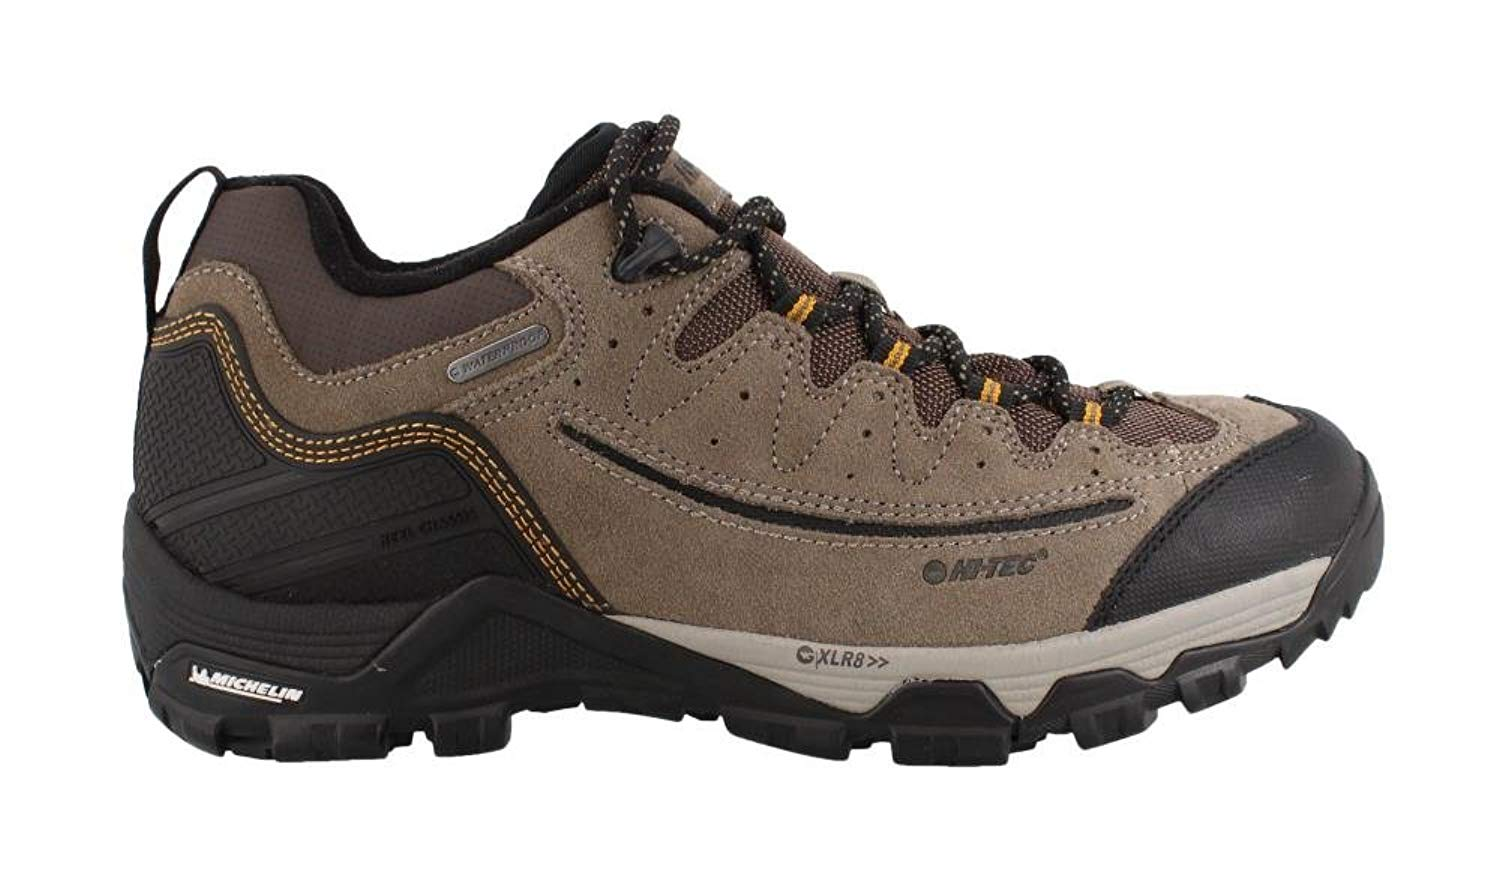 6070fbc6e69dd4 Cheap Hi Tec Safety Shoes, find Hi Tec Safety Shoes deals on line at ...